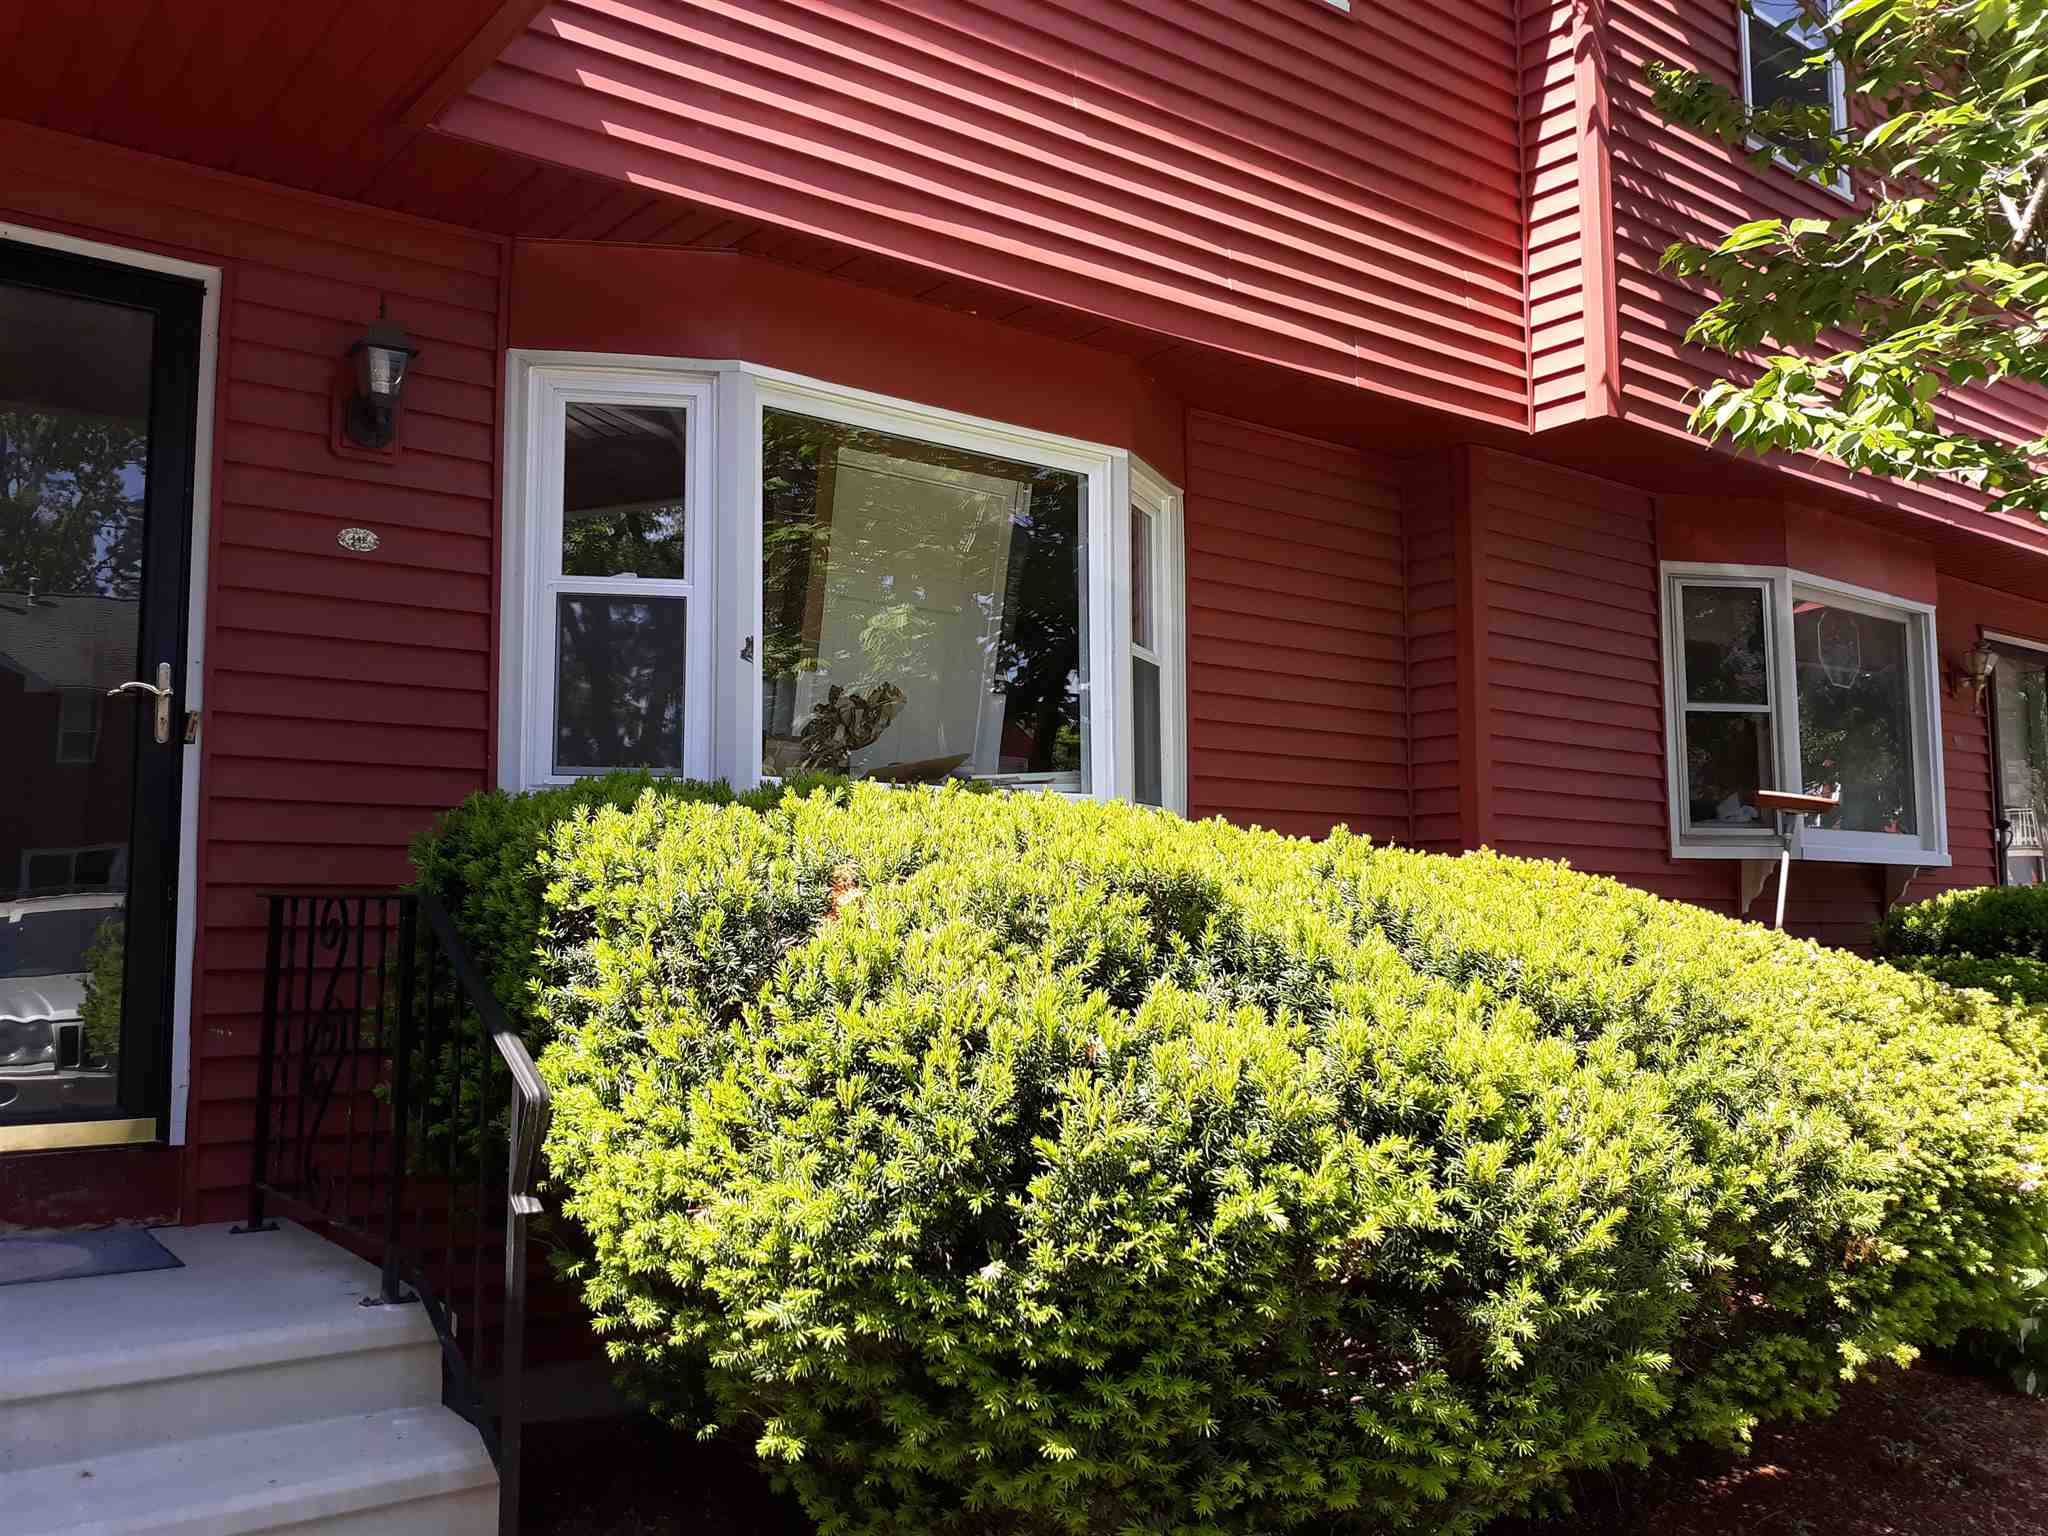 MLS 4829535: 44 Gillis Street-Unit E, Nashua NH